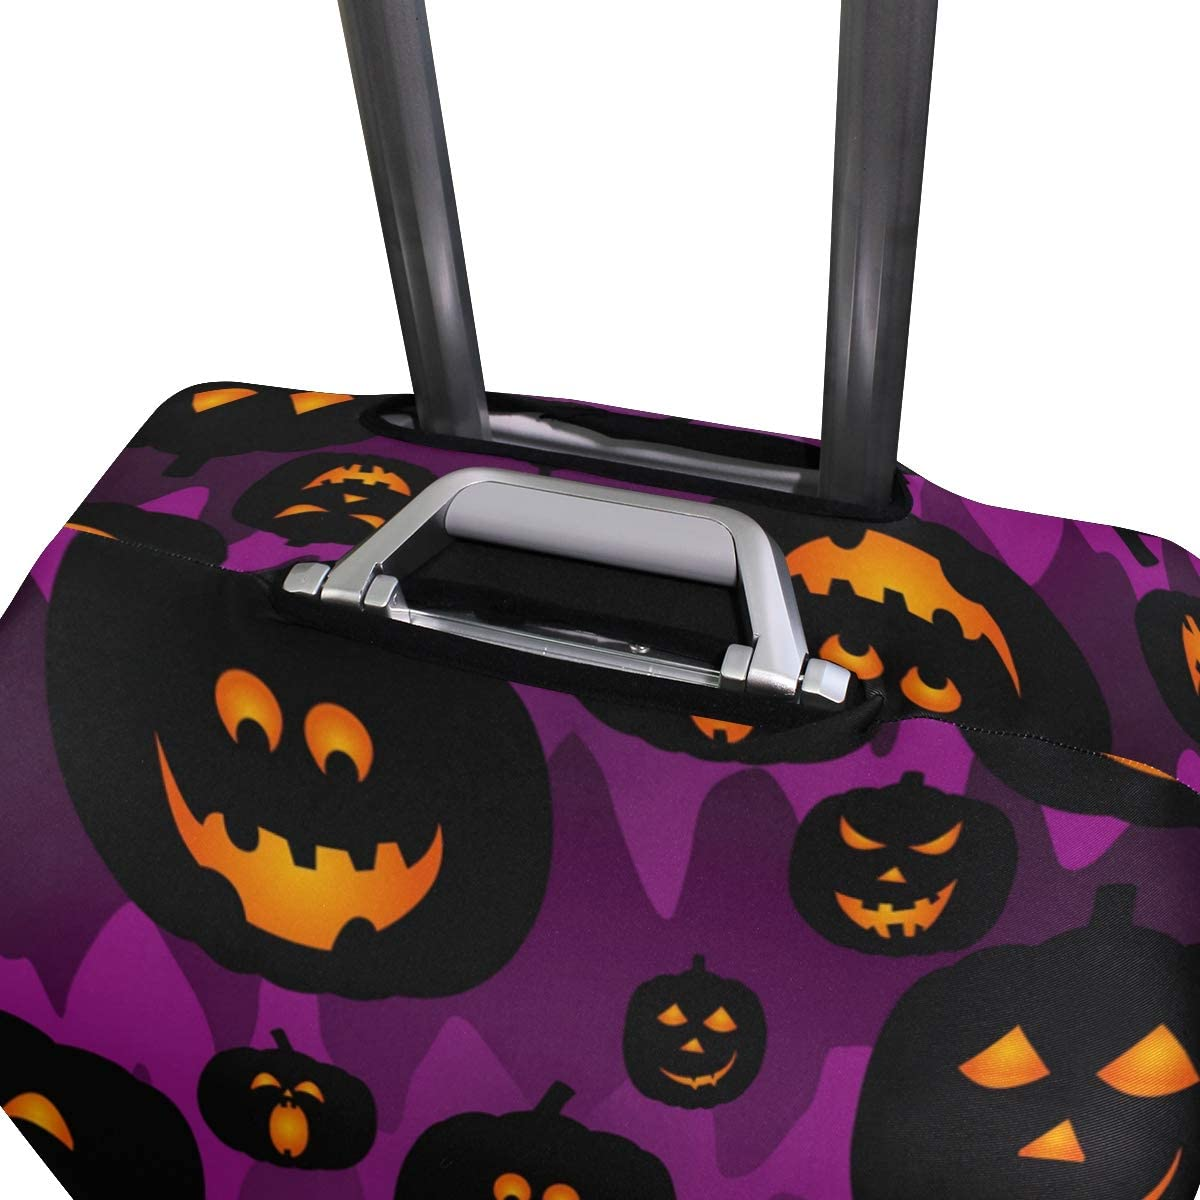 Halloween Pumpkin Travel Luggage Cover Stretchable Polyester Suitcase Protector Fits 18-20 Inches Luggage